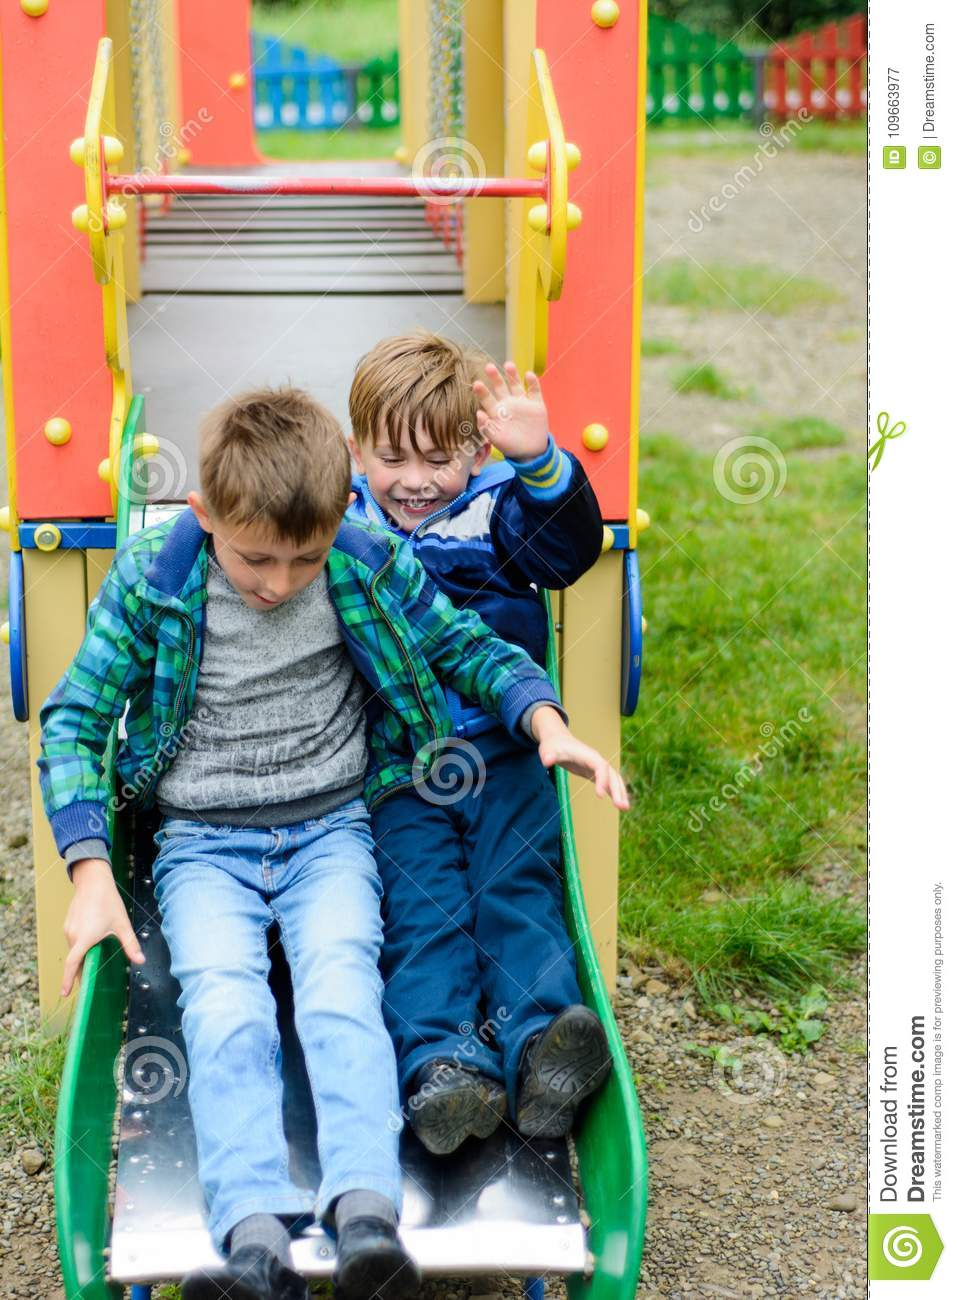 Funny children play on a children`s playground